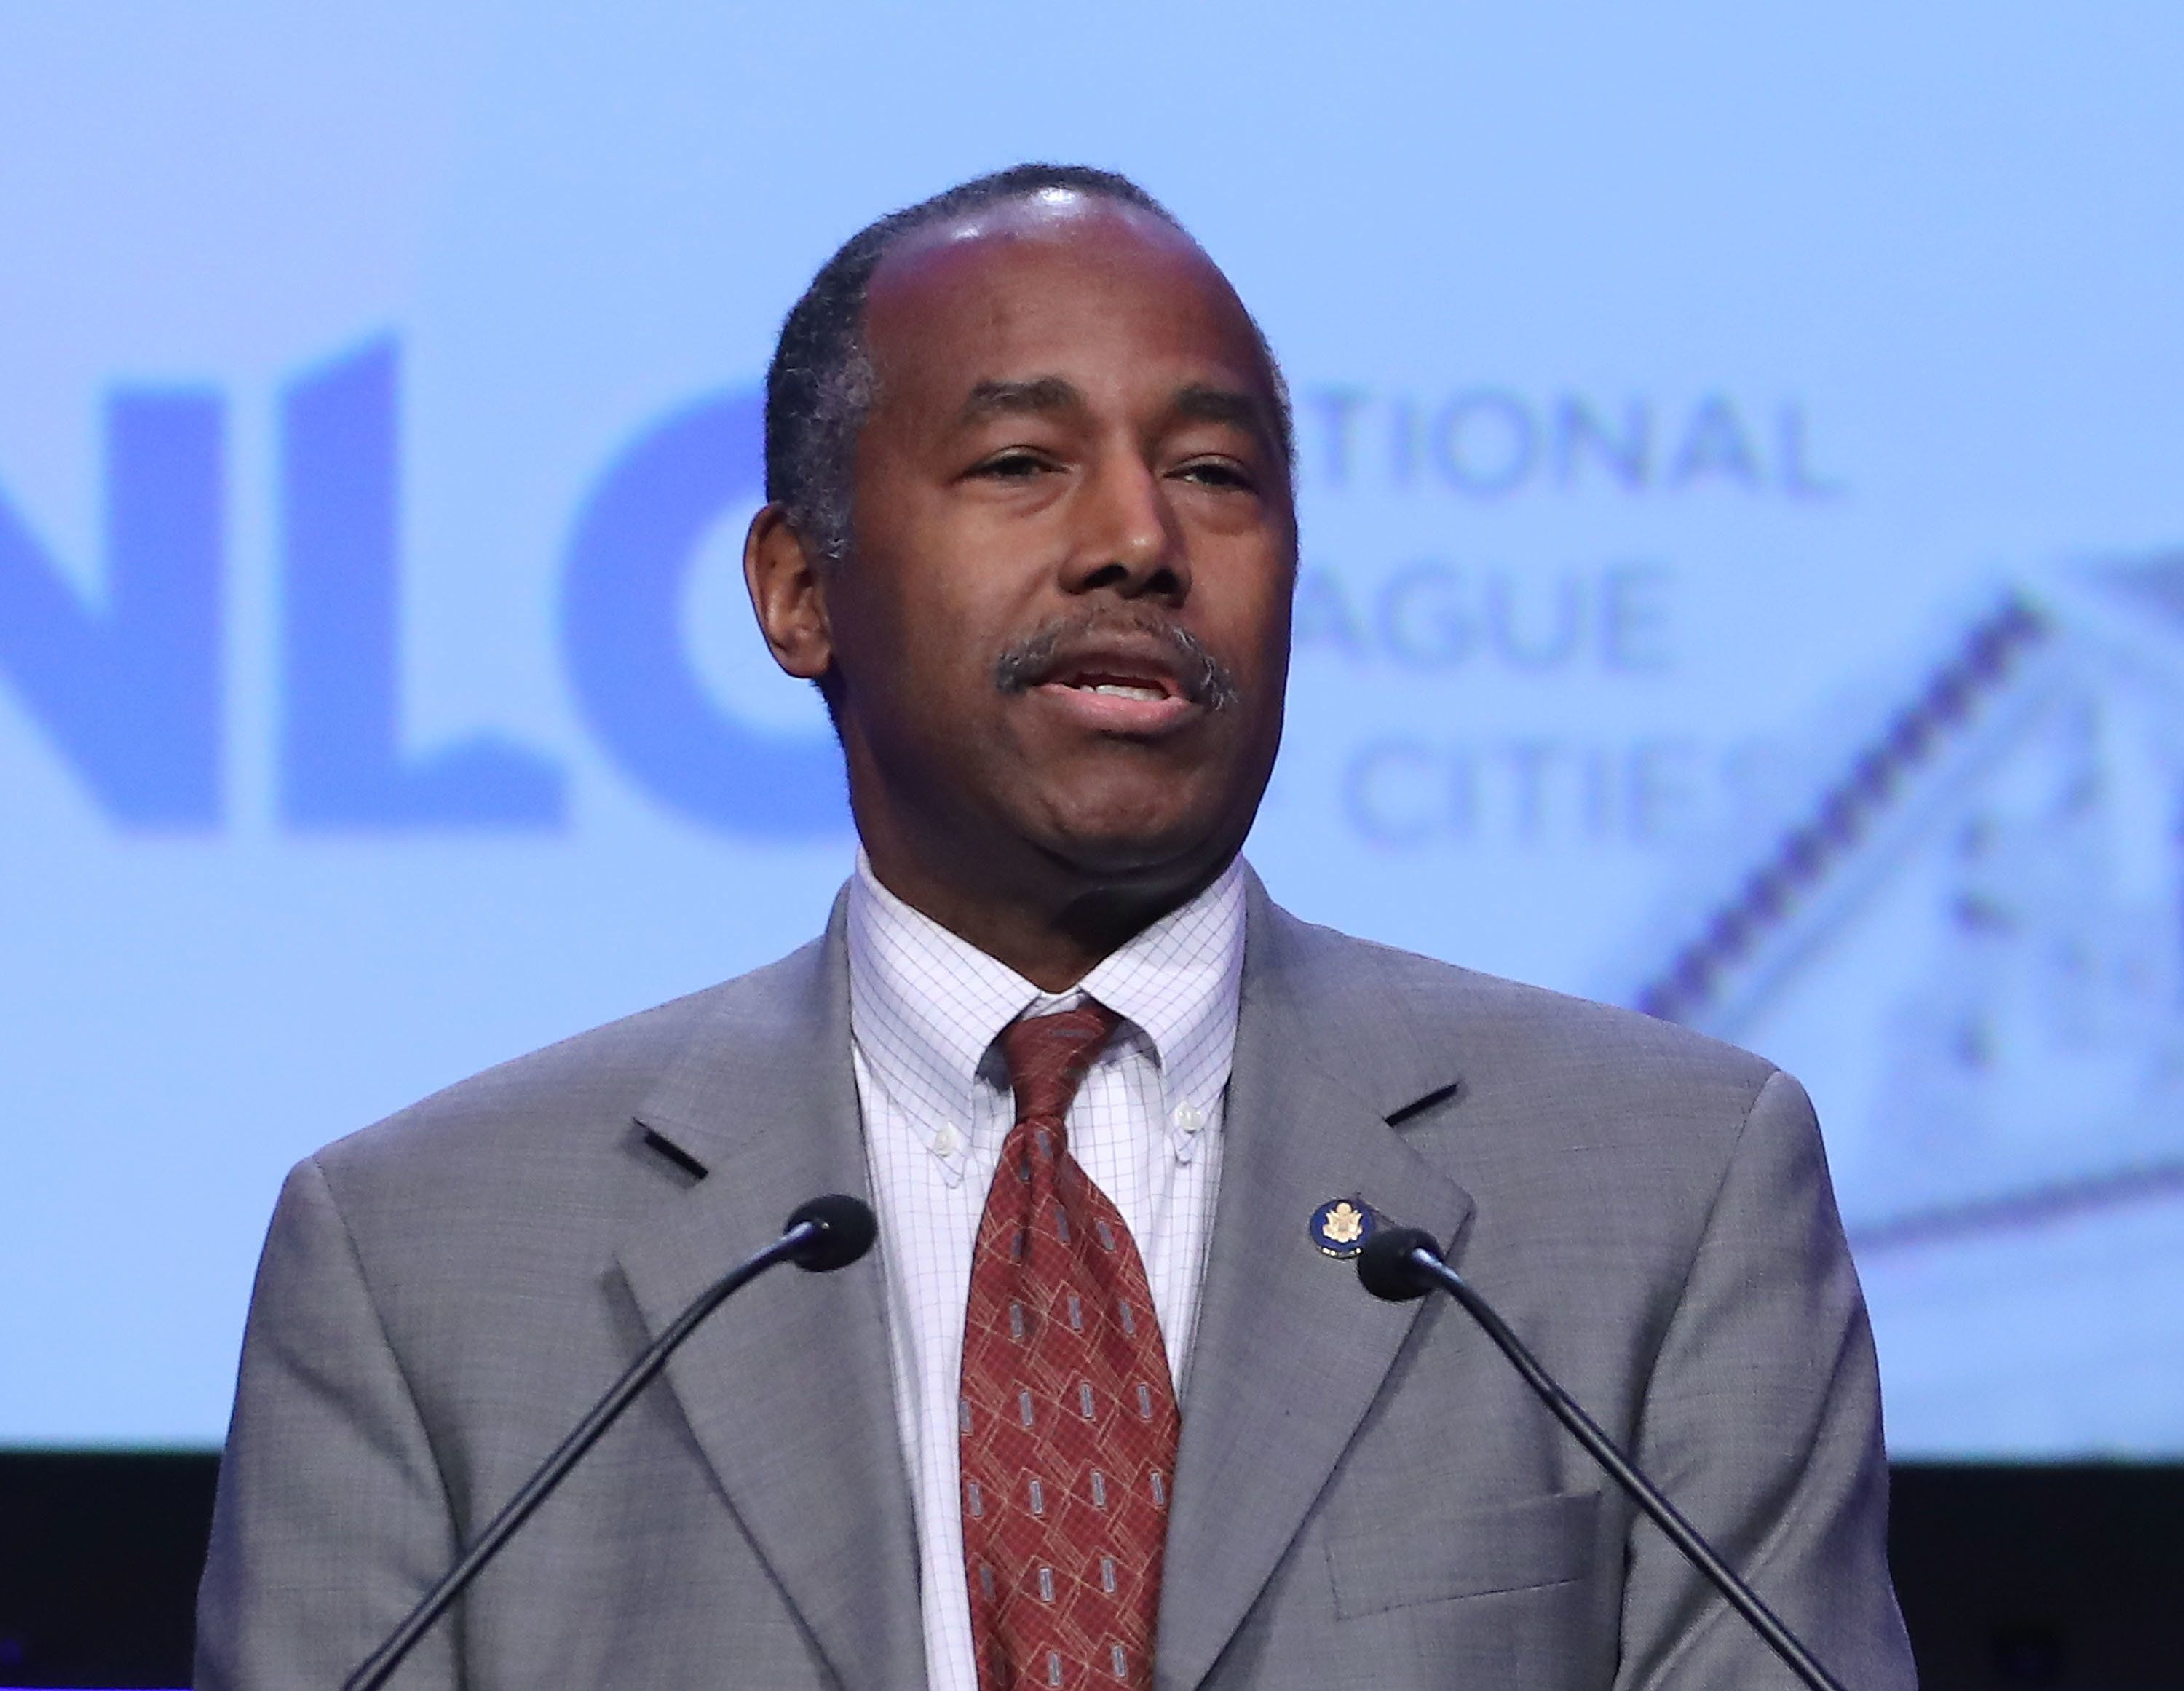 HUD Secretary Ben Carson previously denied having any involvement in the purchase of furniture for his office.